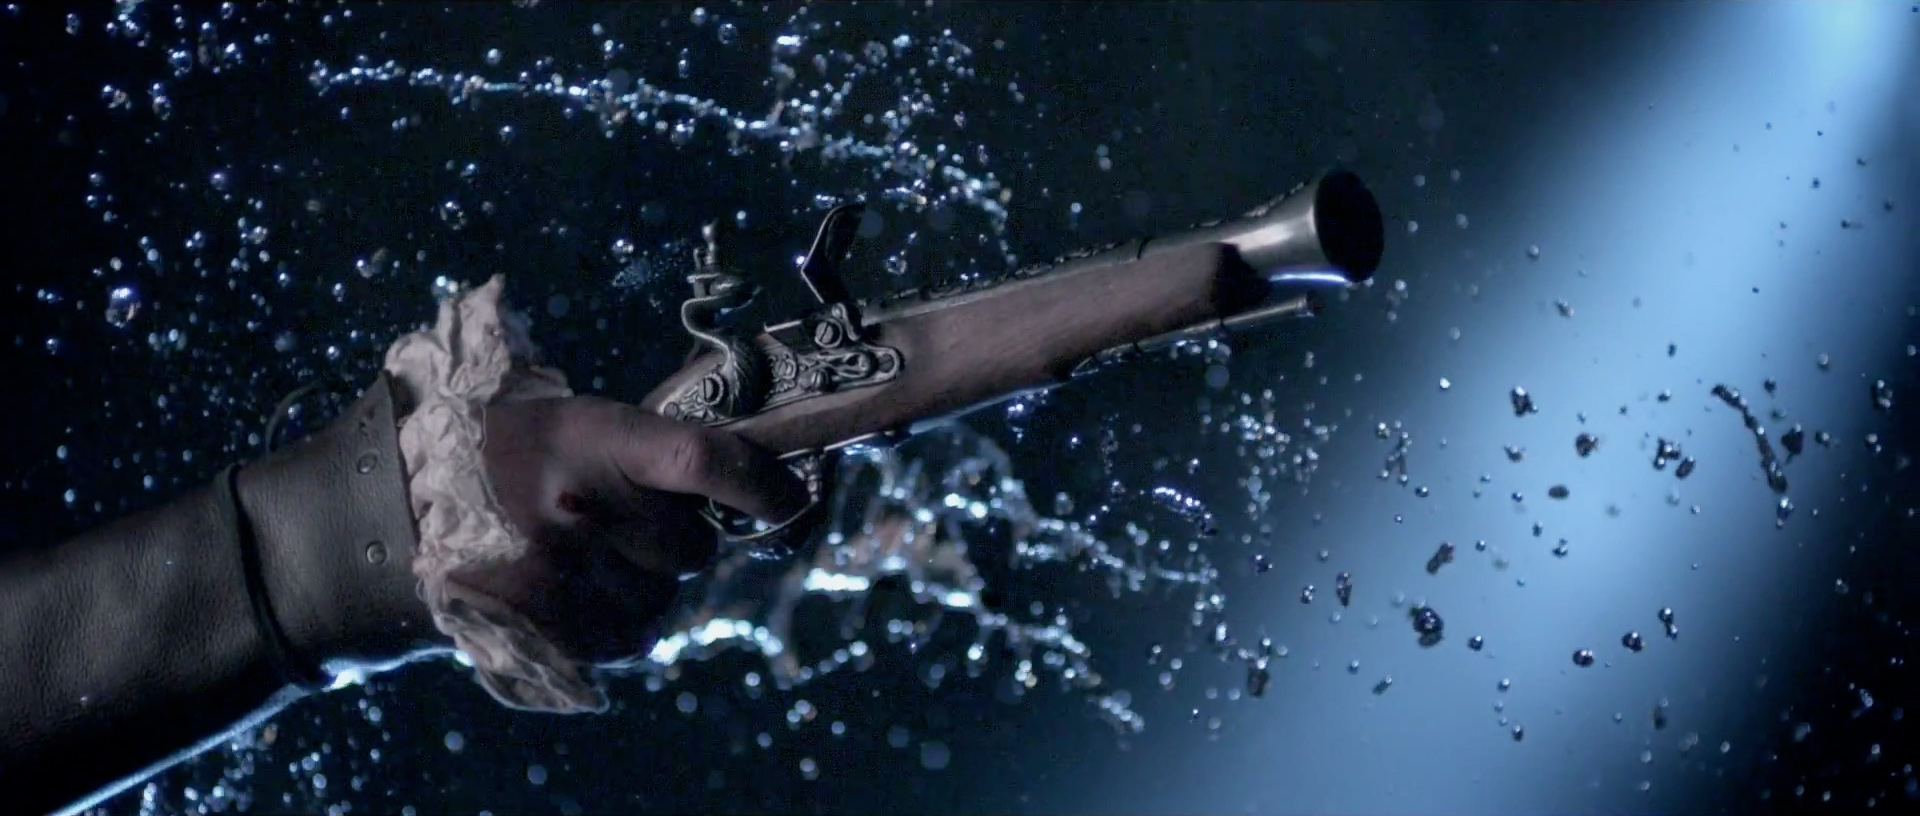 awesome-assassins-creed-short-film-checkmate-17.jpg